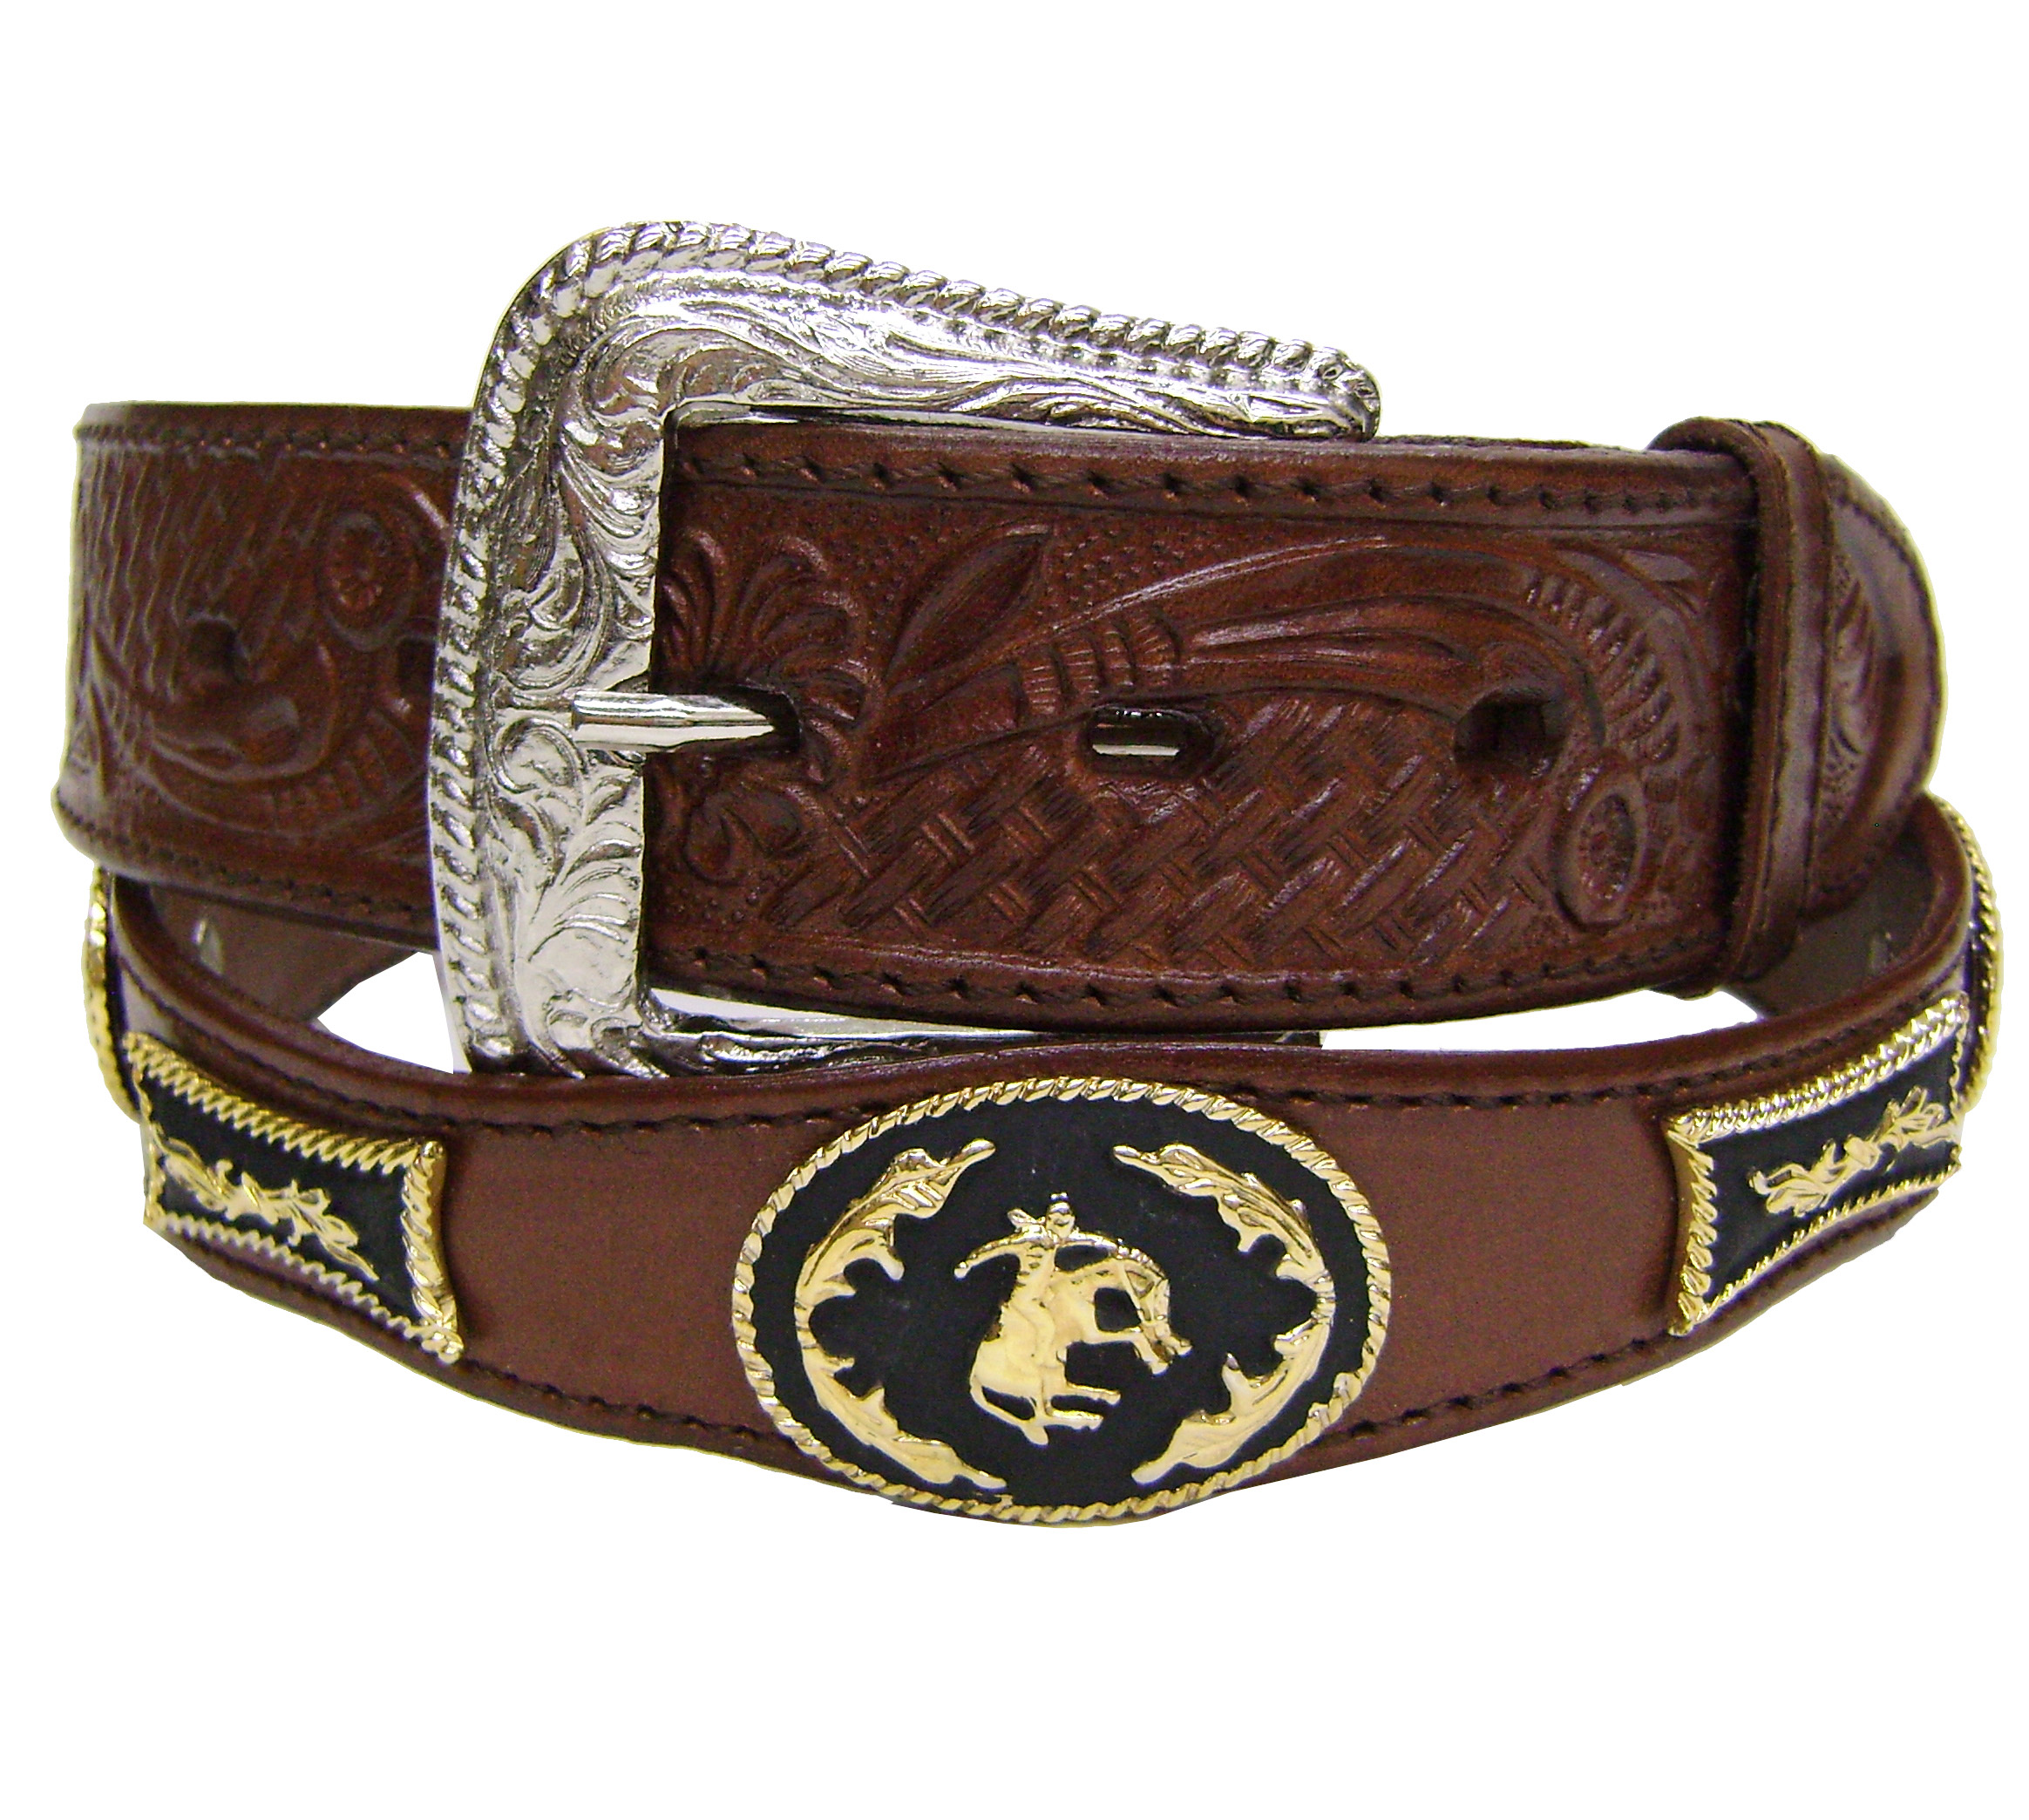 canada usa international quality comfort style fit guaranteed modestone western country leather belts braided hand painted removeable buckle eagle horse  line dancing horse riding equestrian tack dude ranch  fashion accessories distributor wholesale retail